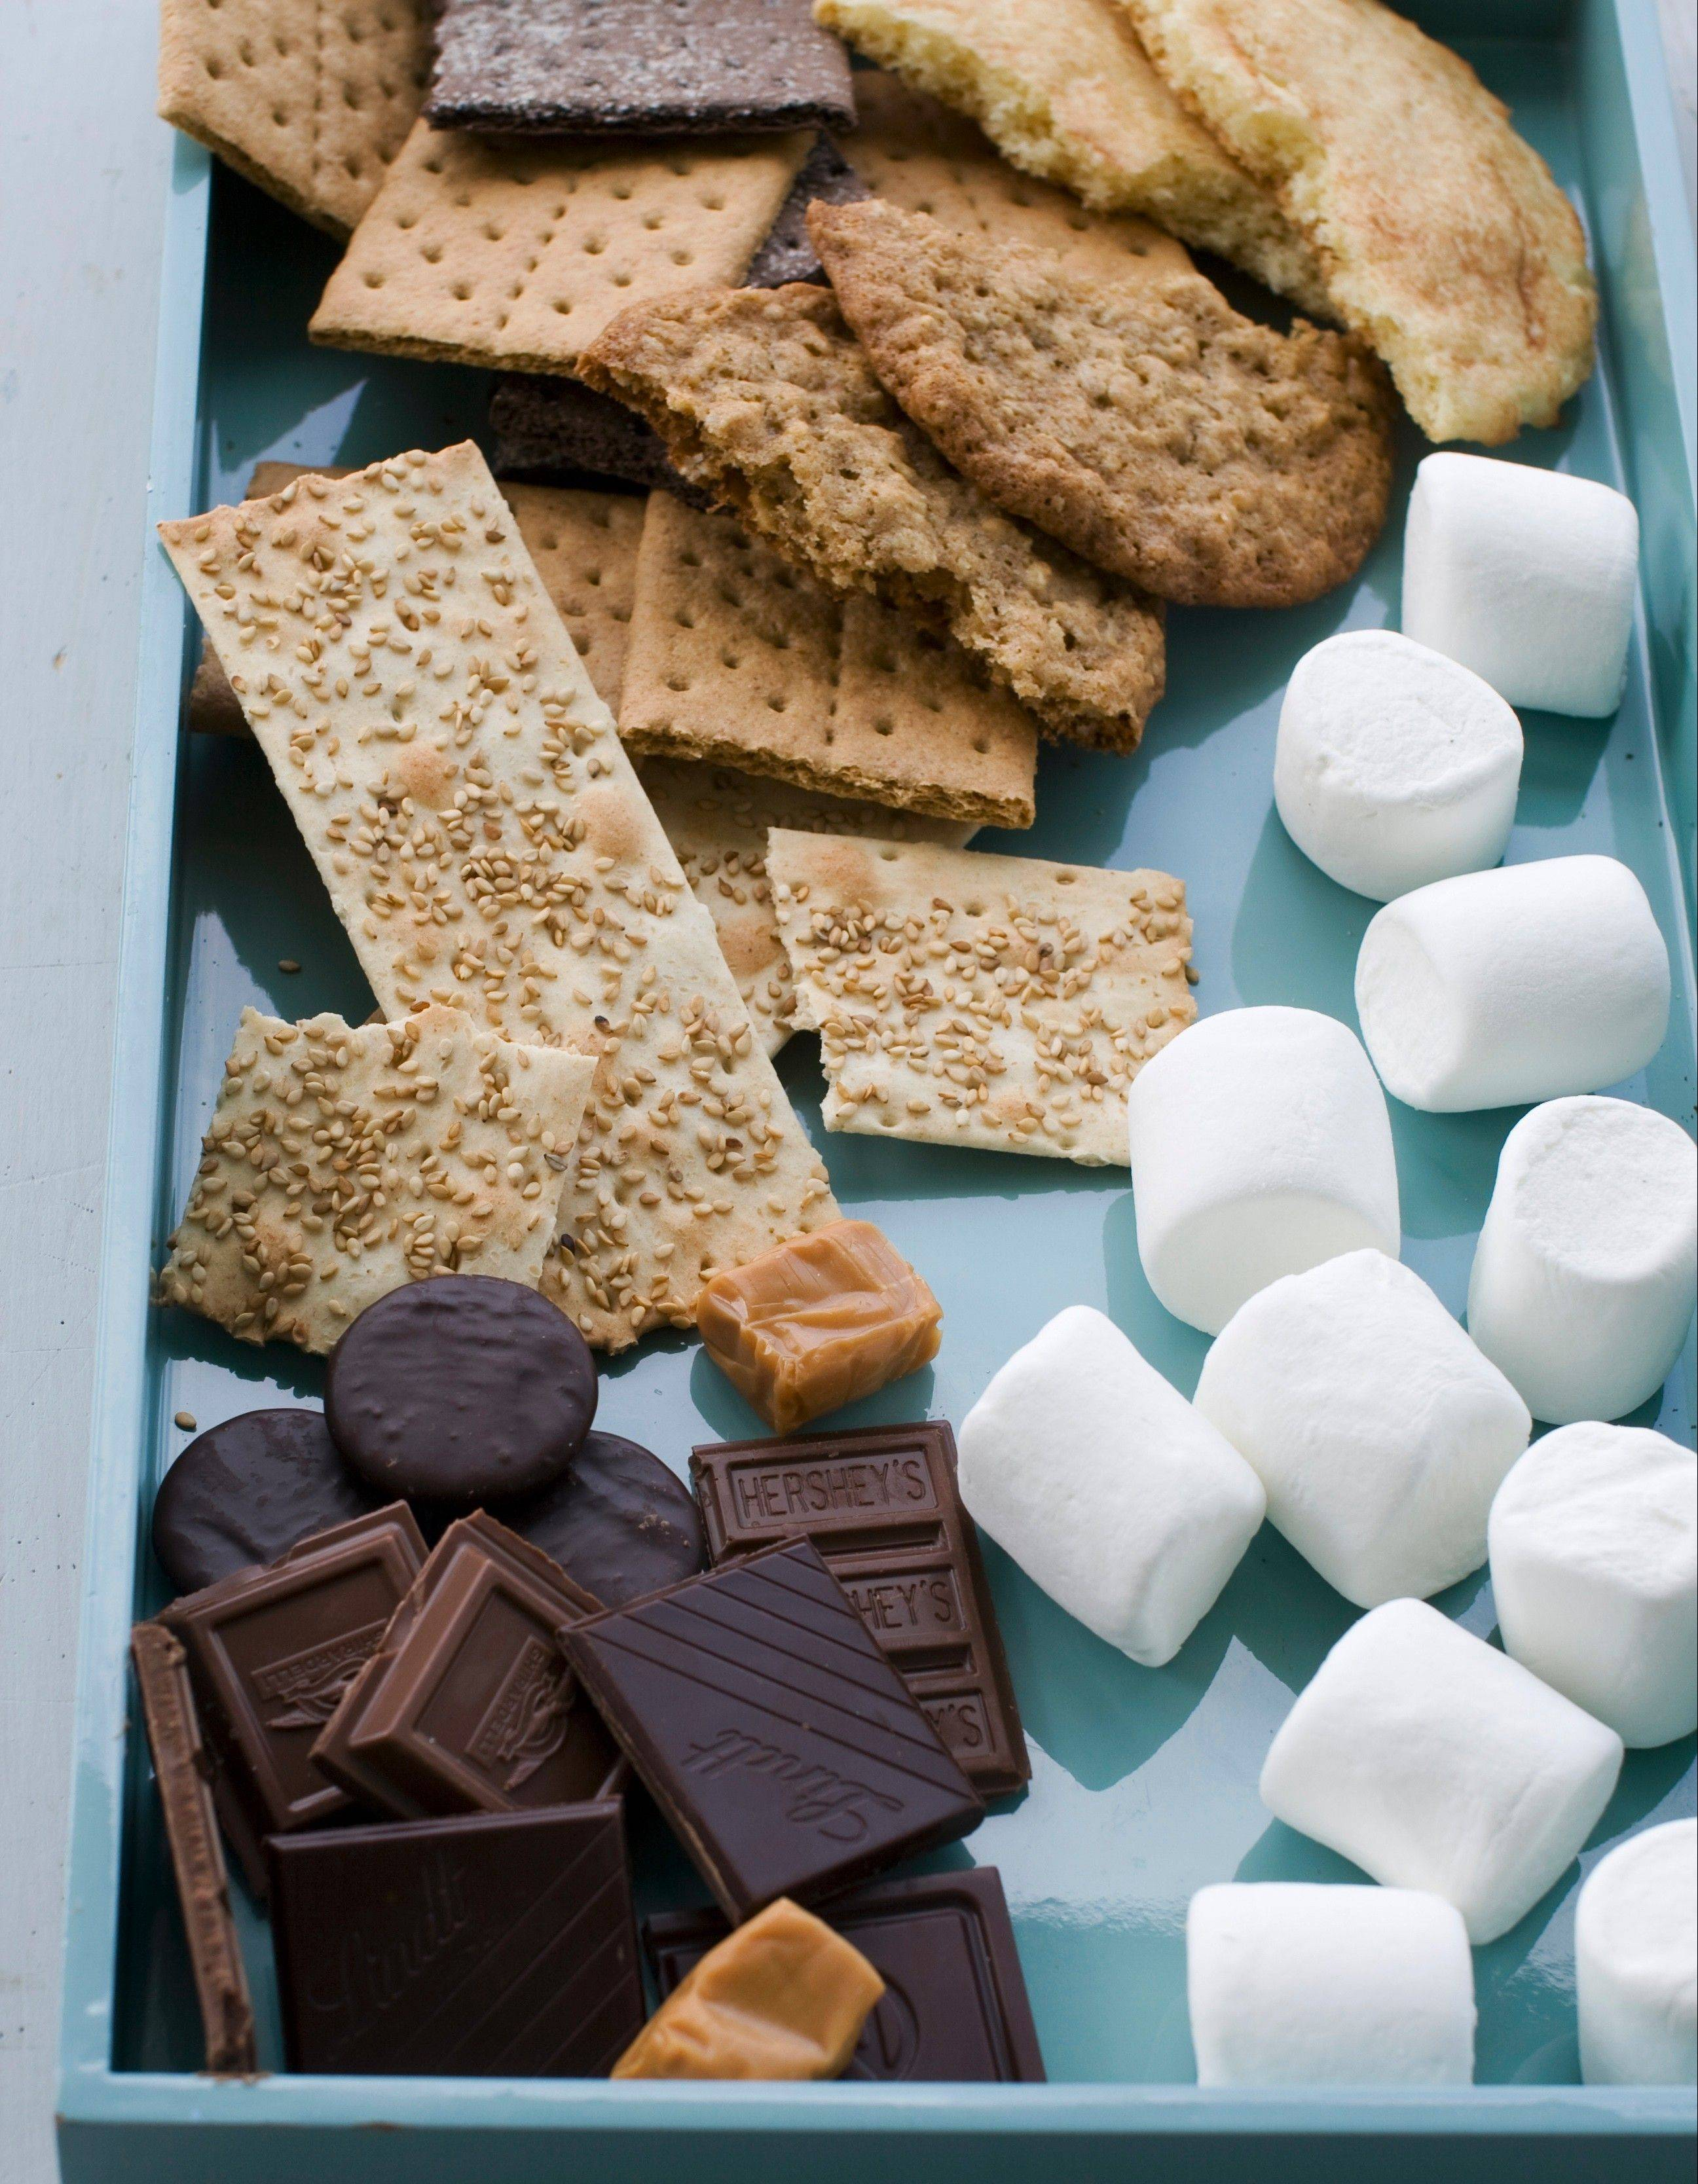 Jazz up s'mores with ingredients like flavored chocolate bars and a variety of cookies.